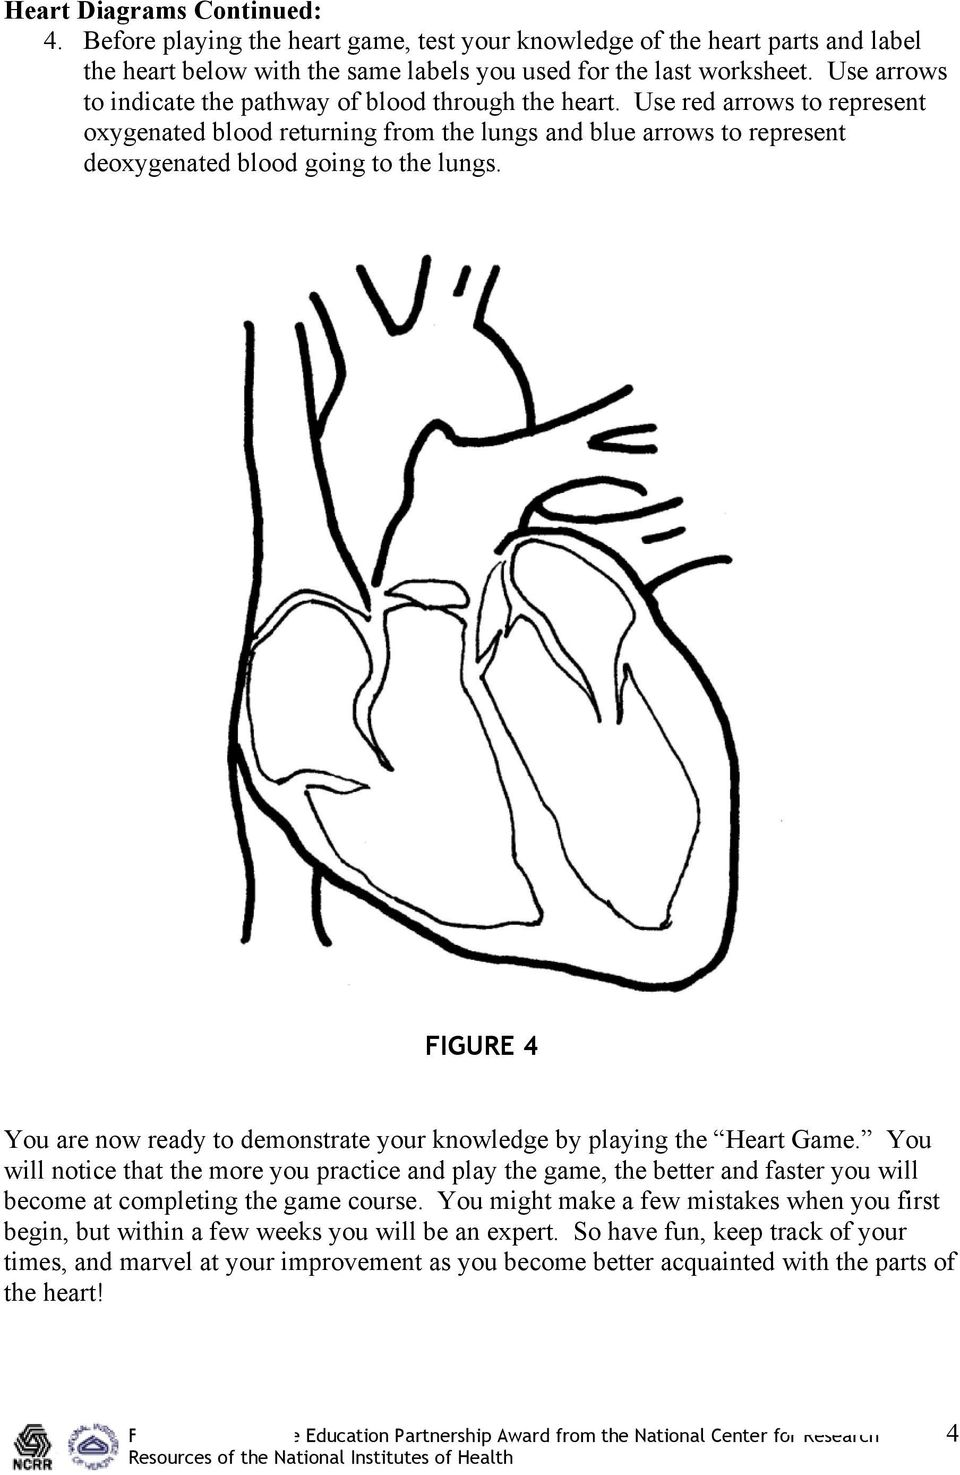 Cardioheads level i the heart and exercise unit introduction the figure 4 you are now ready to demonstrate your knowledge by playing the heart game ccuart Gallery